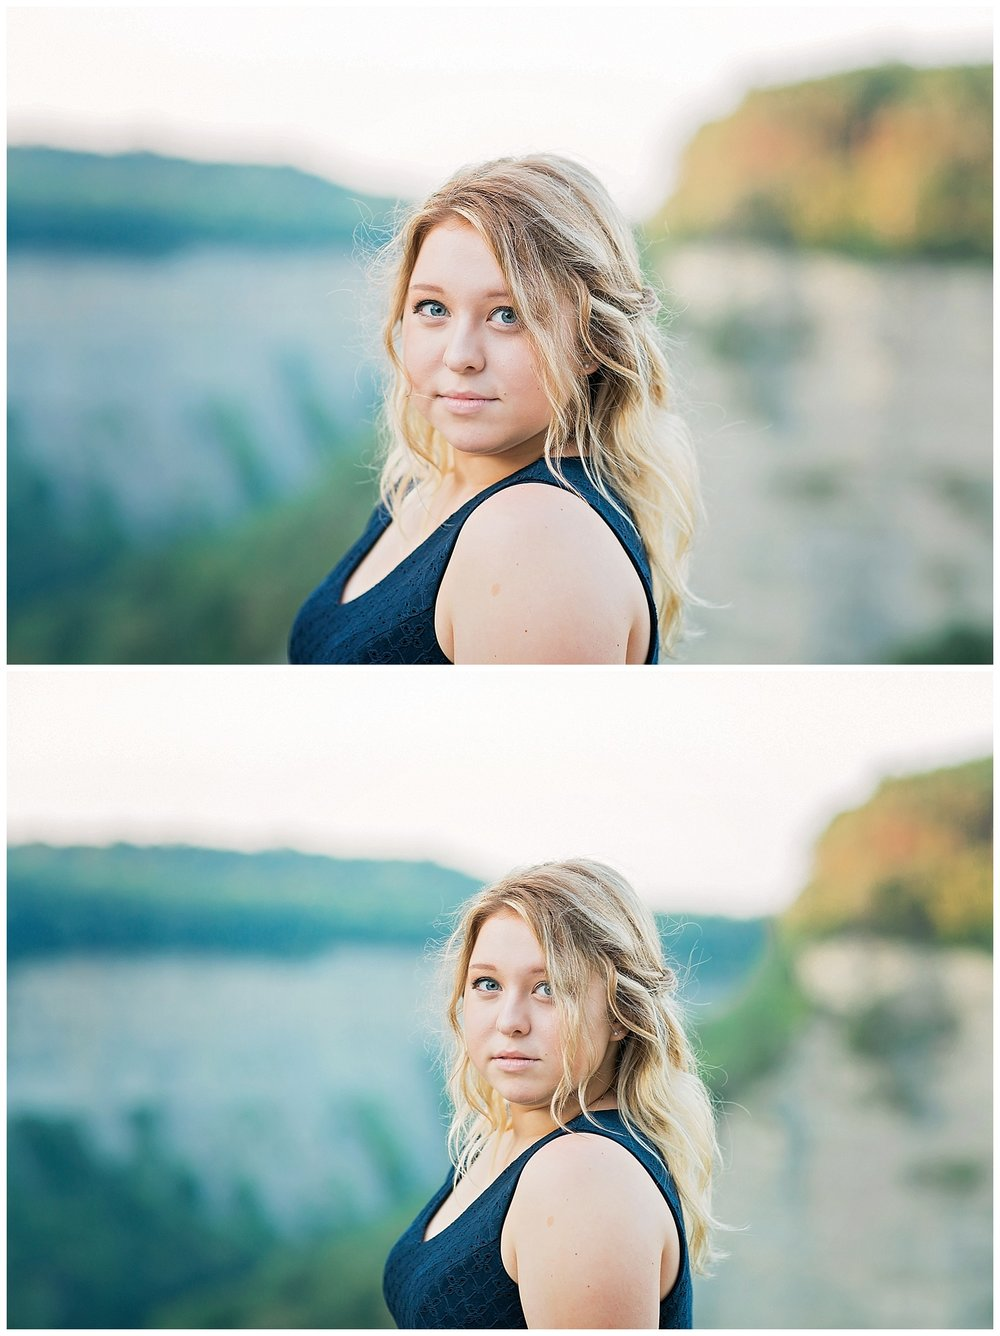 Hannah houghton school -letchworth state park senior session - lass and beau-268_Buffalo wedding photography.jpg